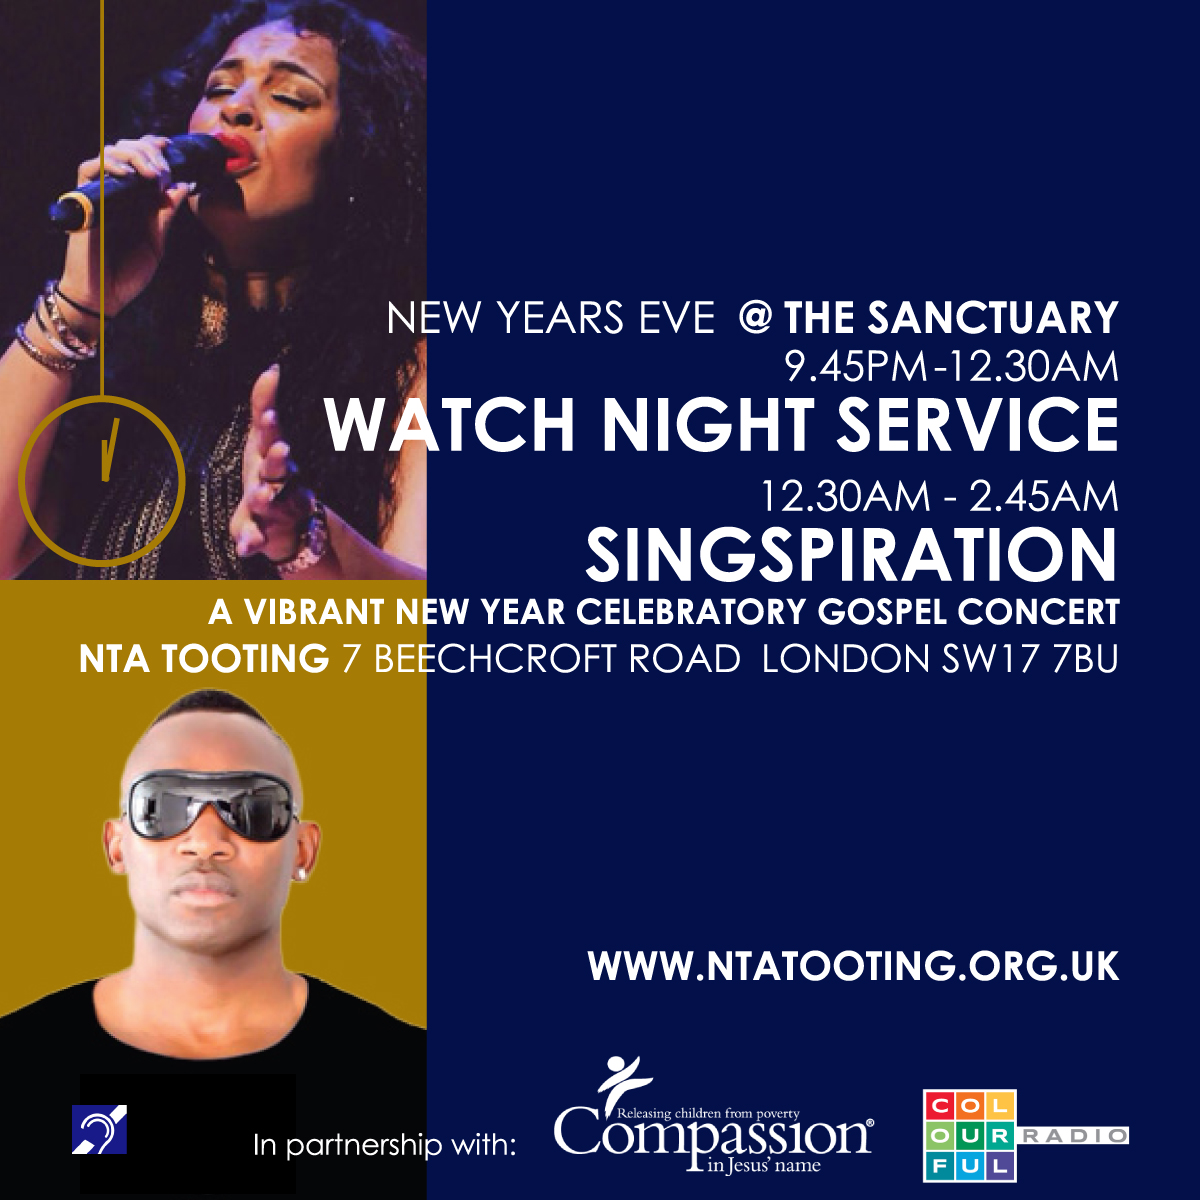 Watch Night Service & Singspiration